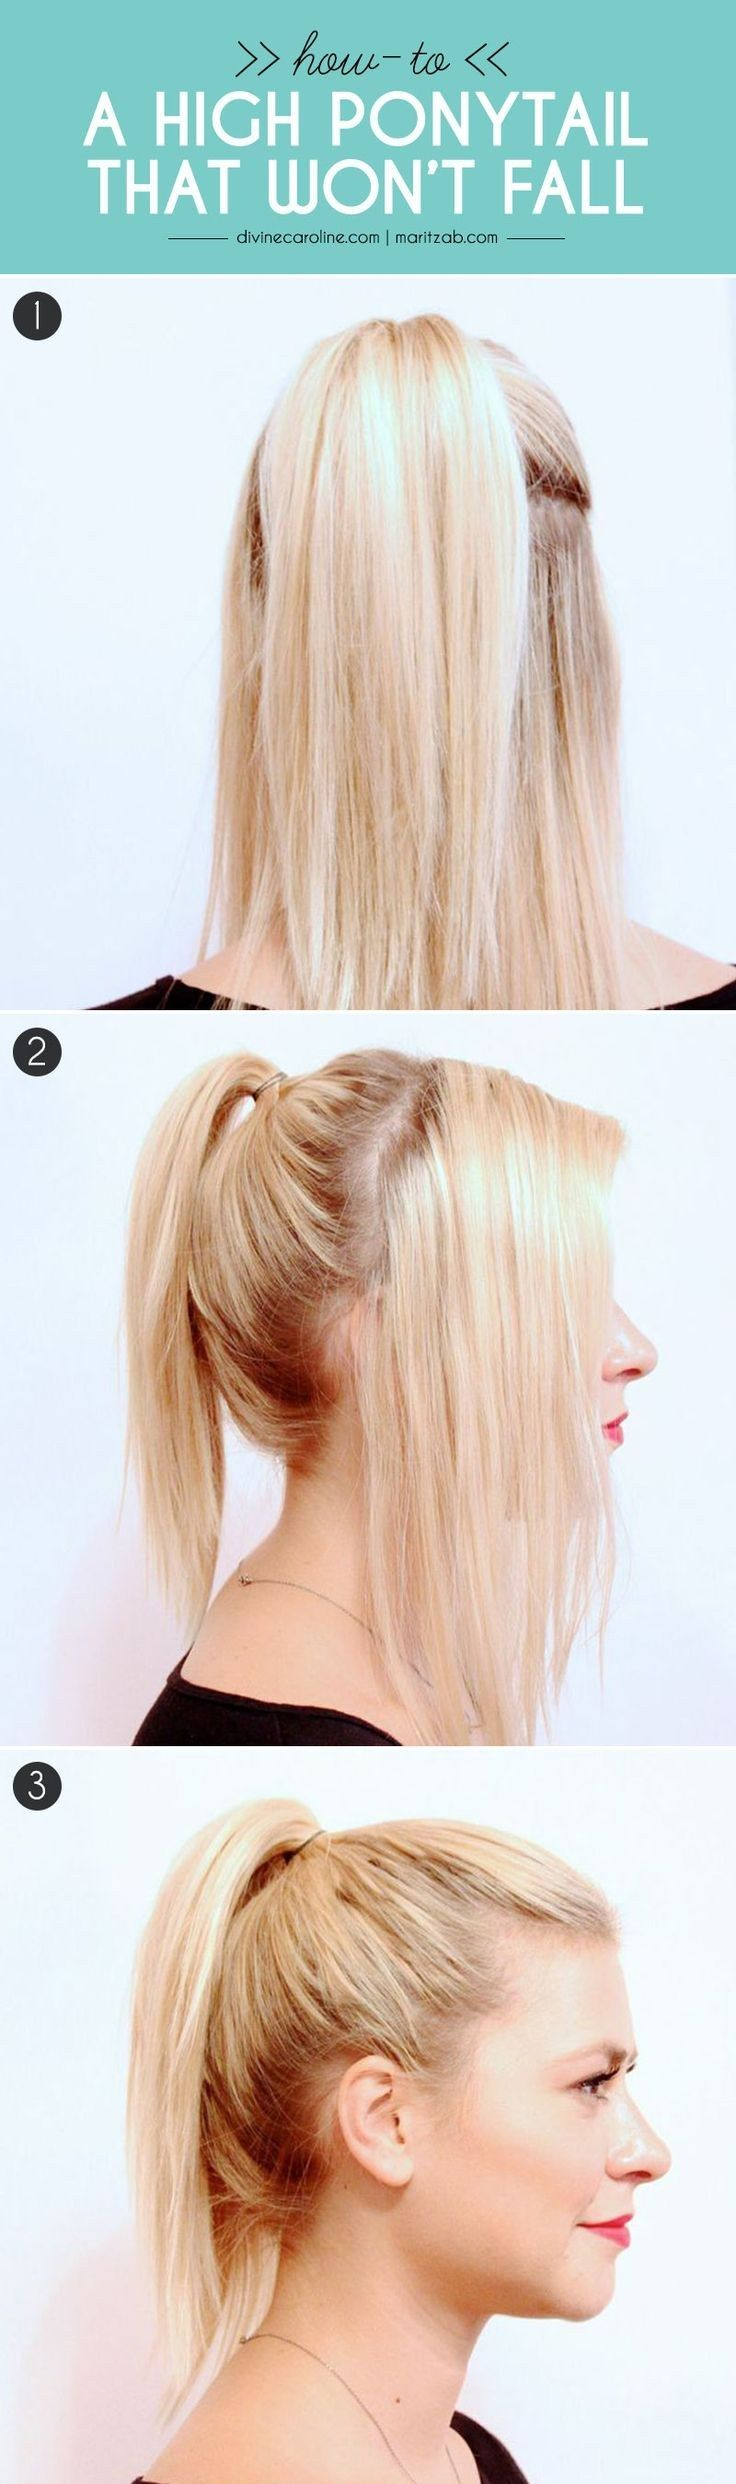 27%20Tips%20And%20Tricks%20To%20Get%20The%20Perfect%20Ponytail